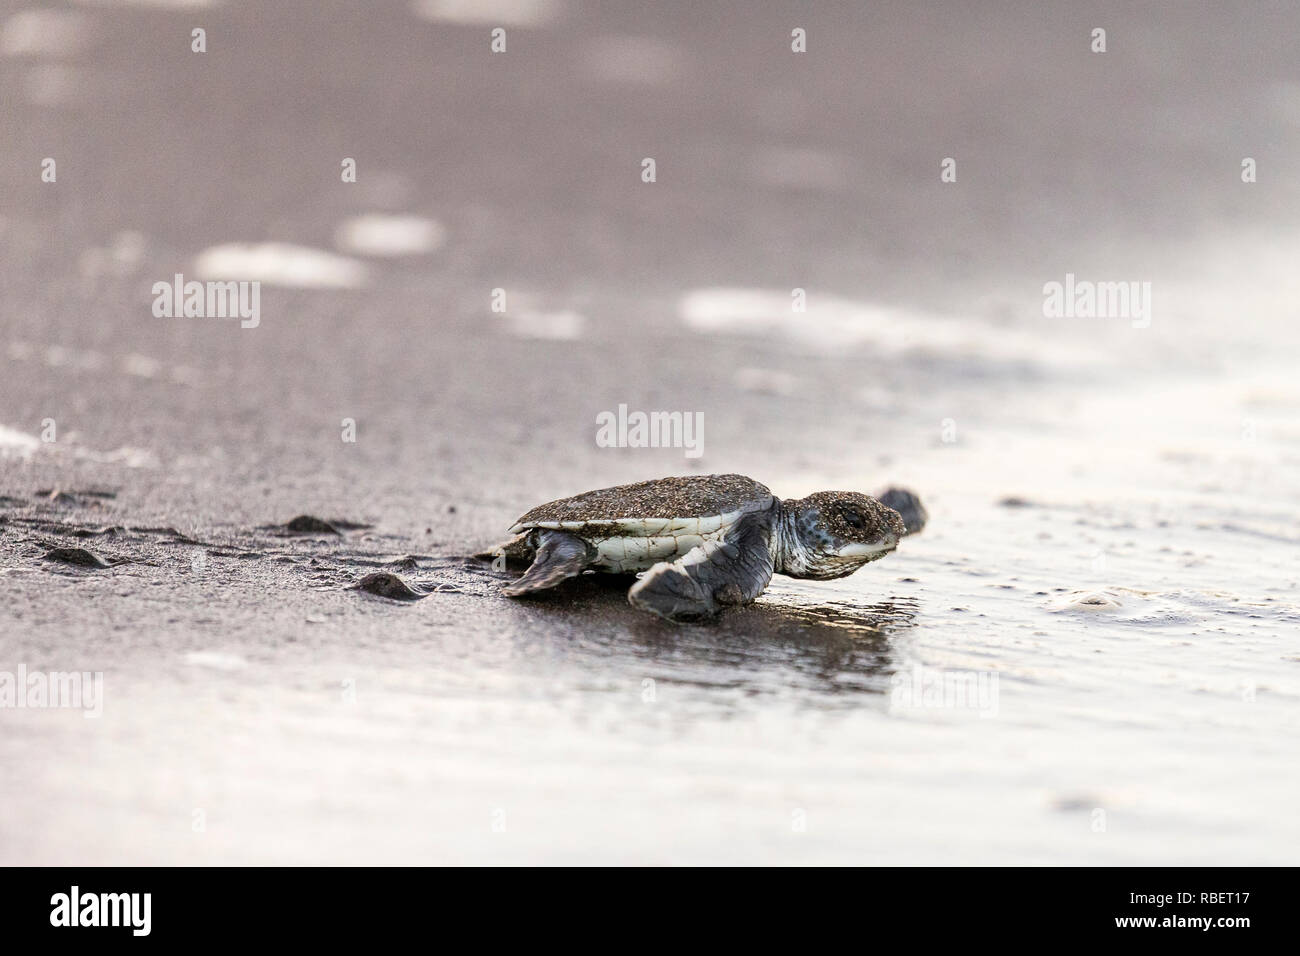 Green sea turtle hatchling making for the Caribbean sea, Tortuguero National Park, Costa Rica - Stock Image